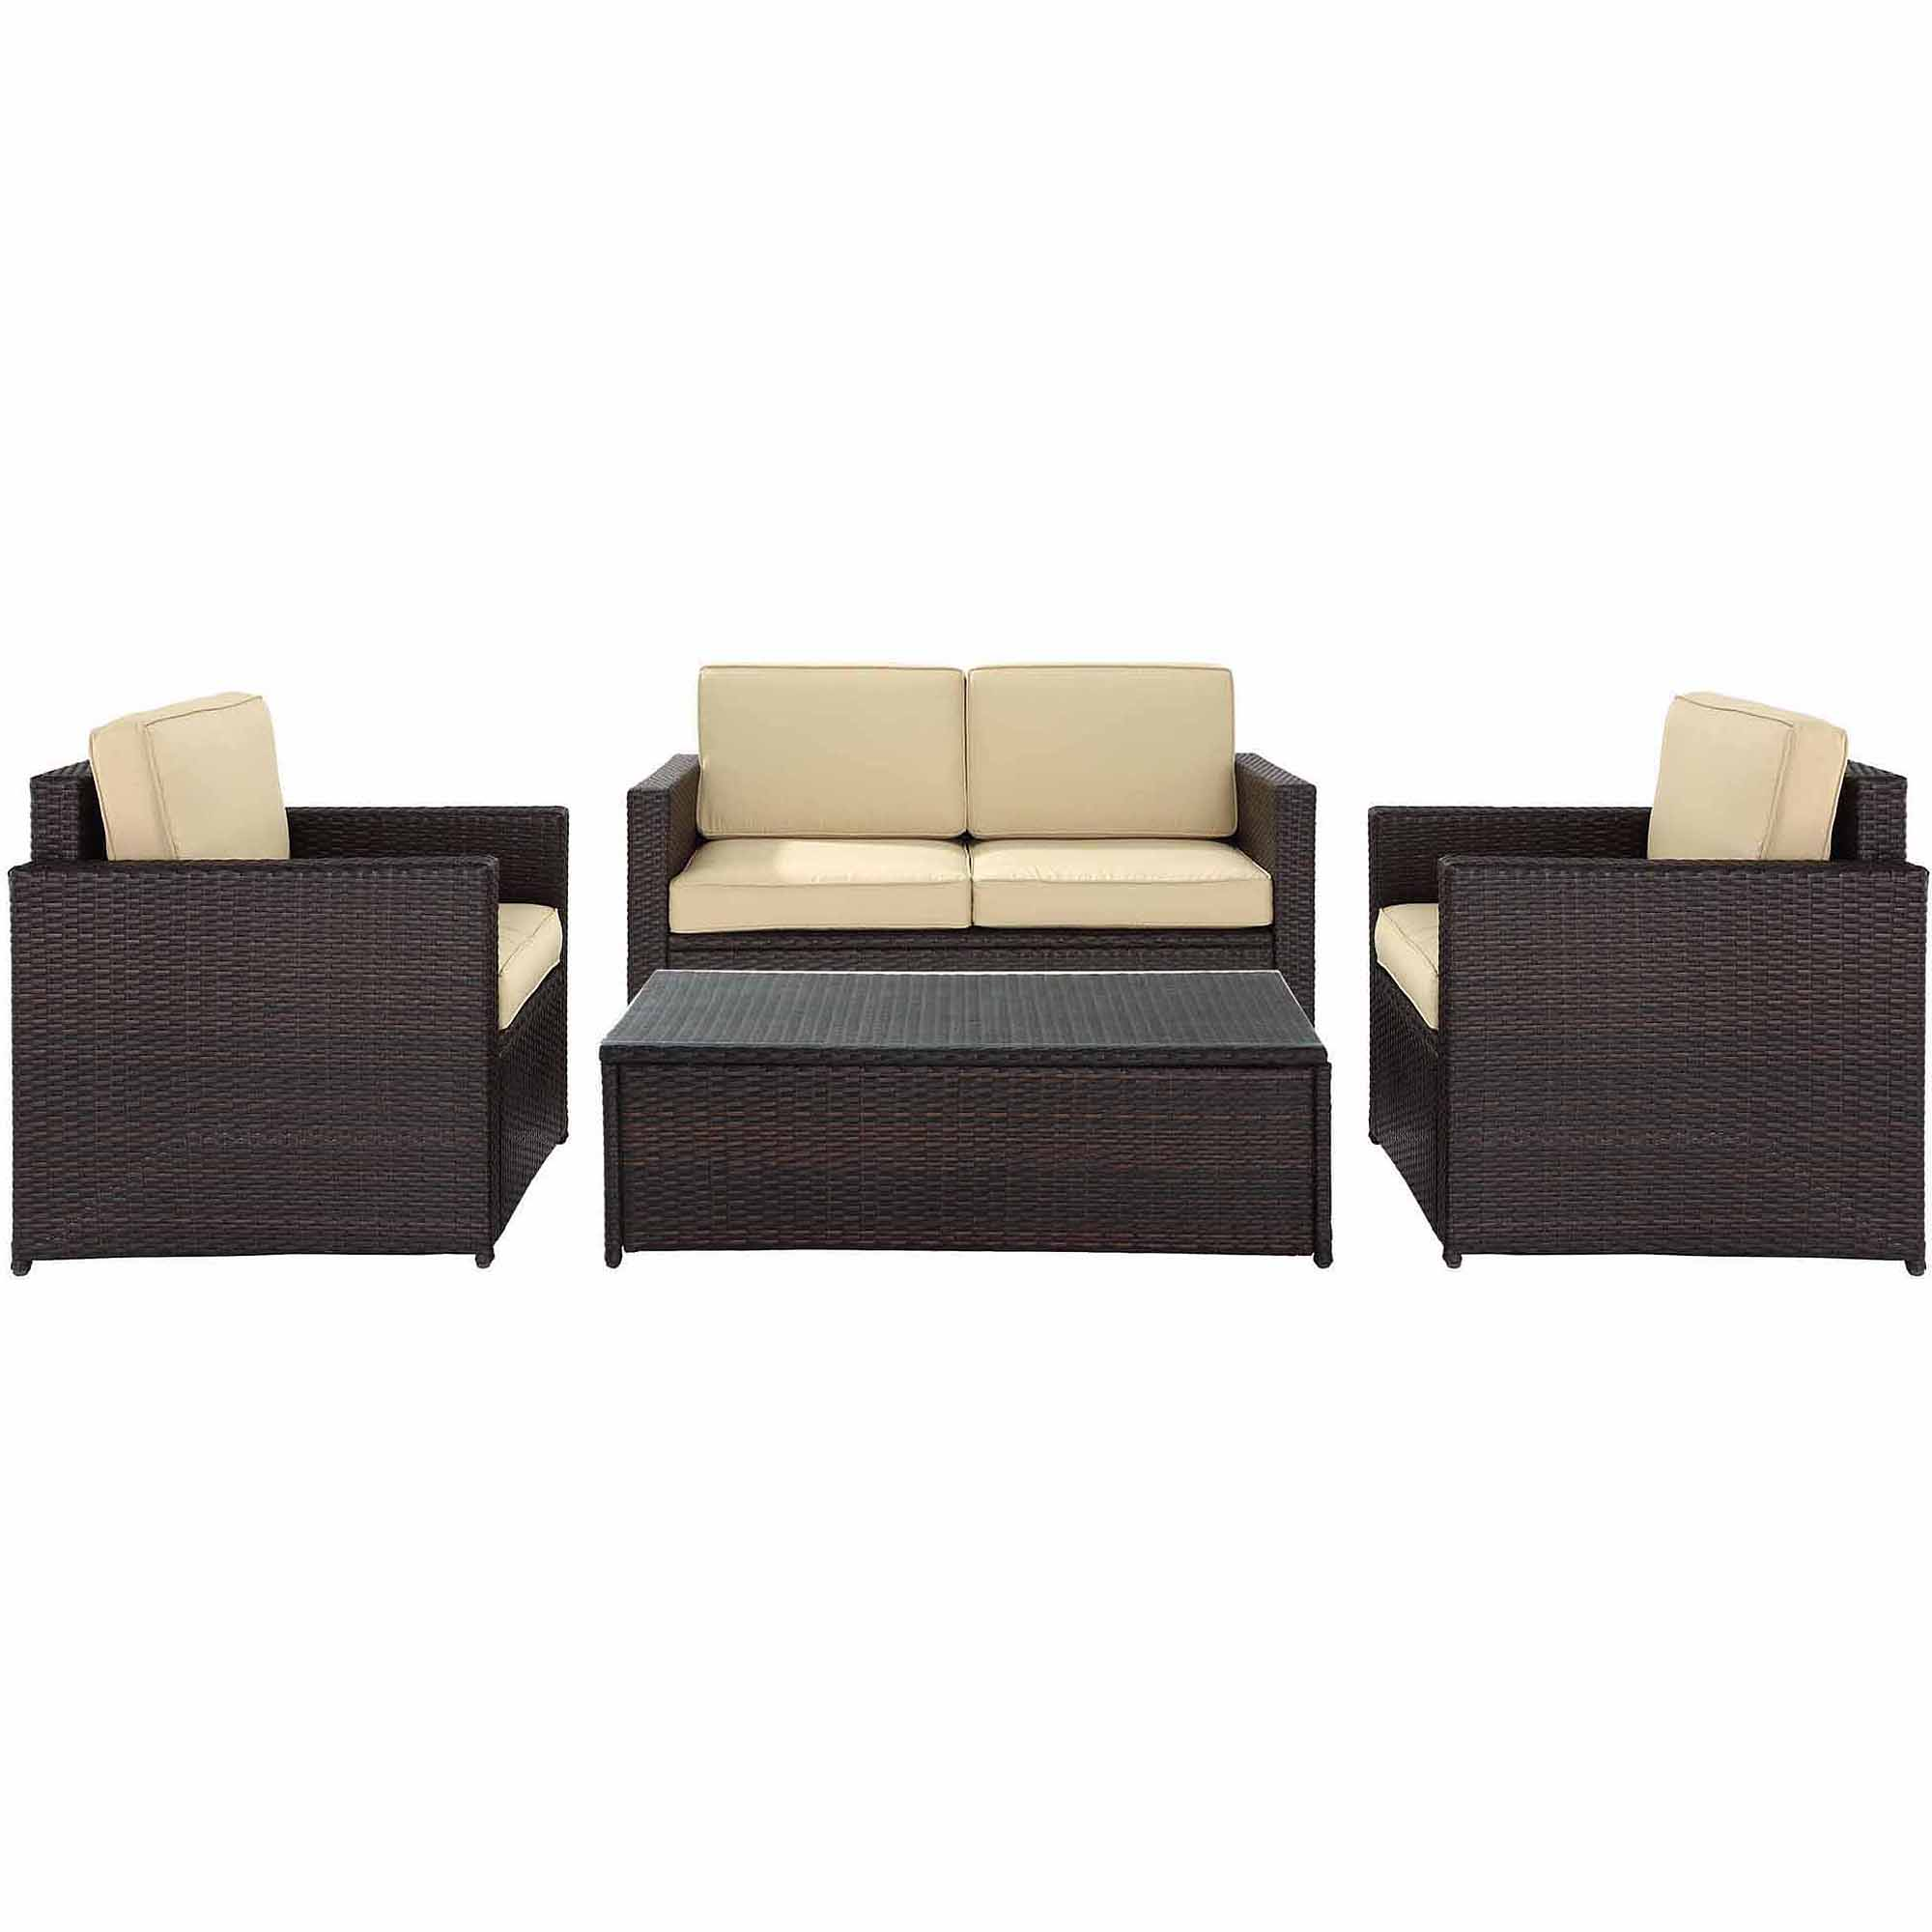 Stupendous Crosley Furniture Palm Harbor 4 Piece Outdoor Wicker Seating Set Alphanode Cool Chair Designs And Ideas Alphanodeonline